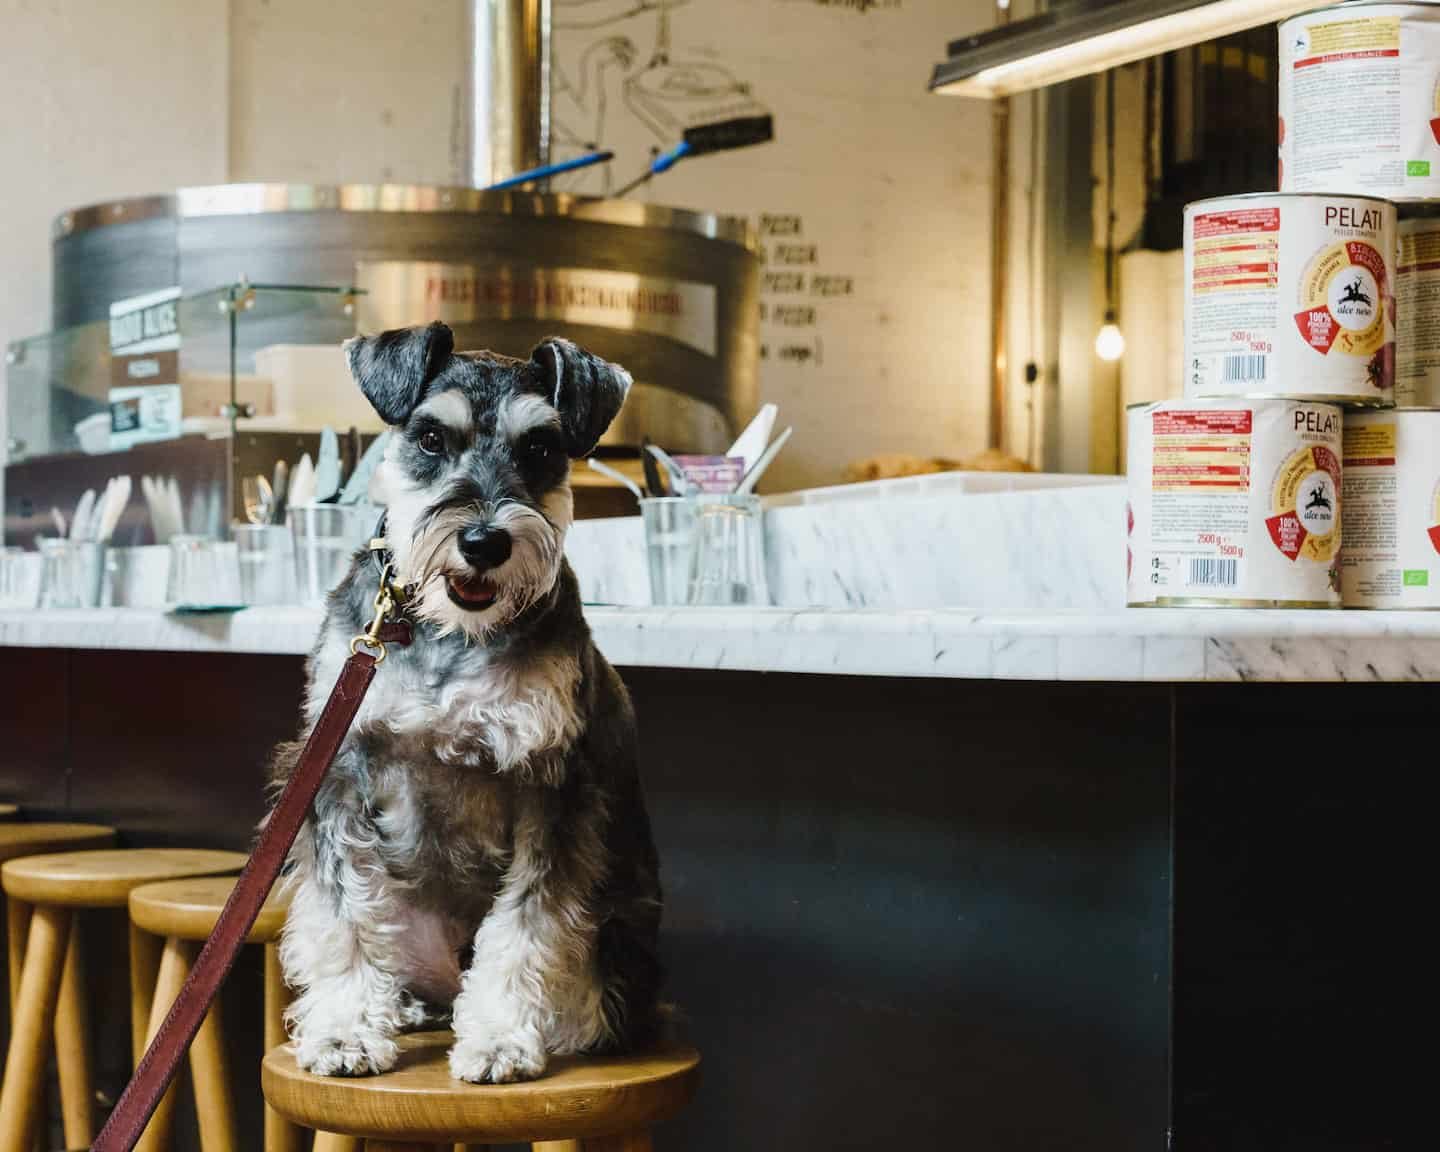 My Dog Friendly London By Rusty Red The Schnauzer | Dog Friendly Shoreditch and Hoxton Radio Alice 3